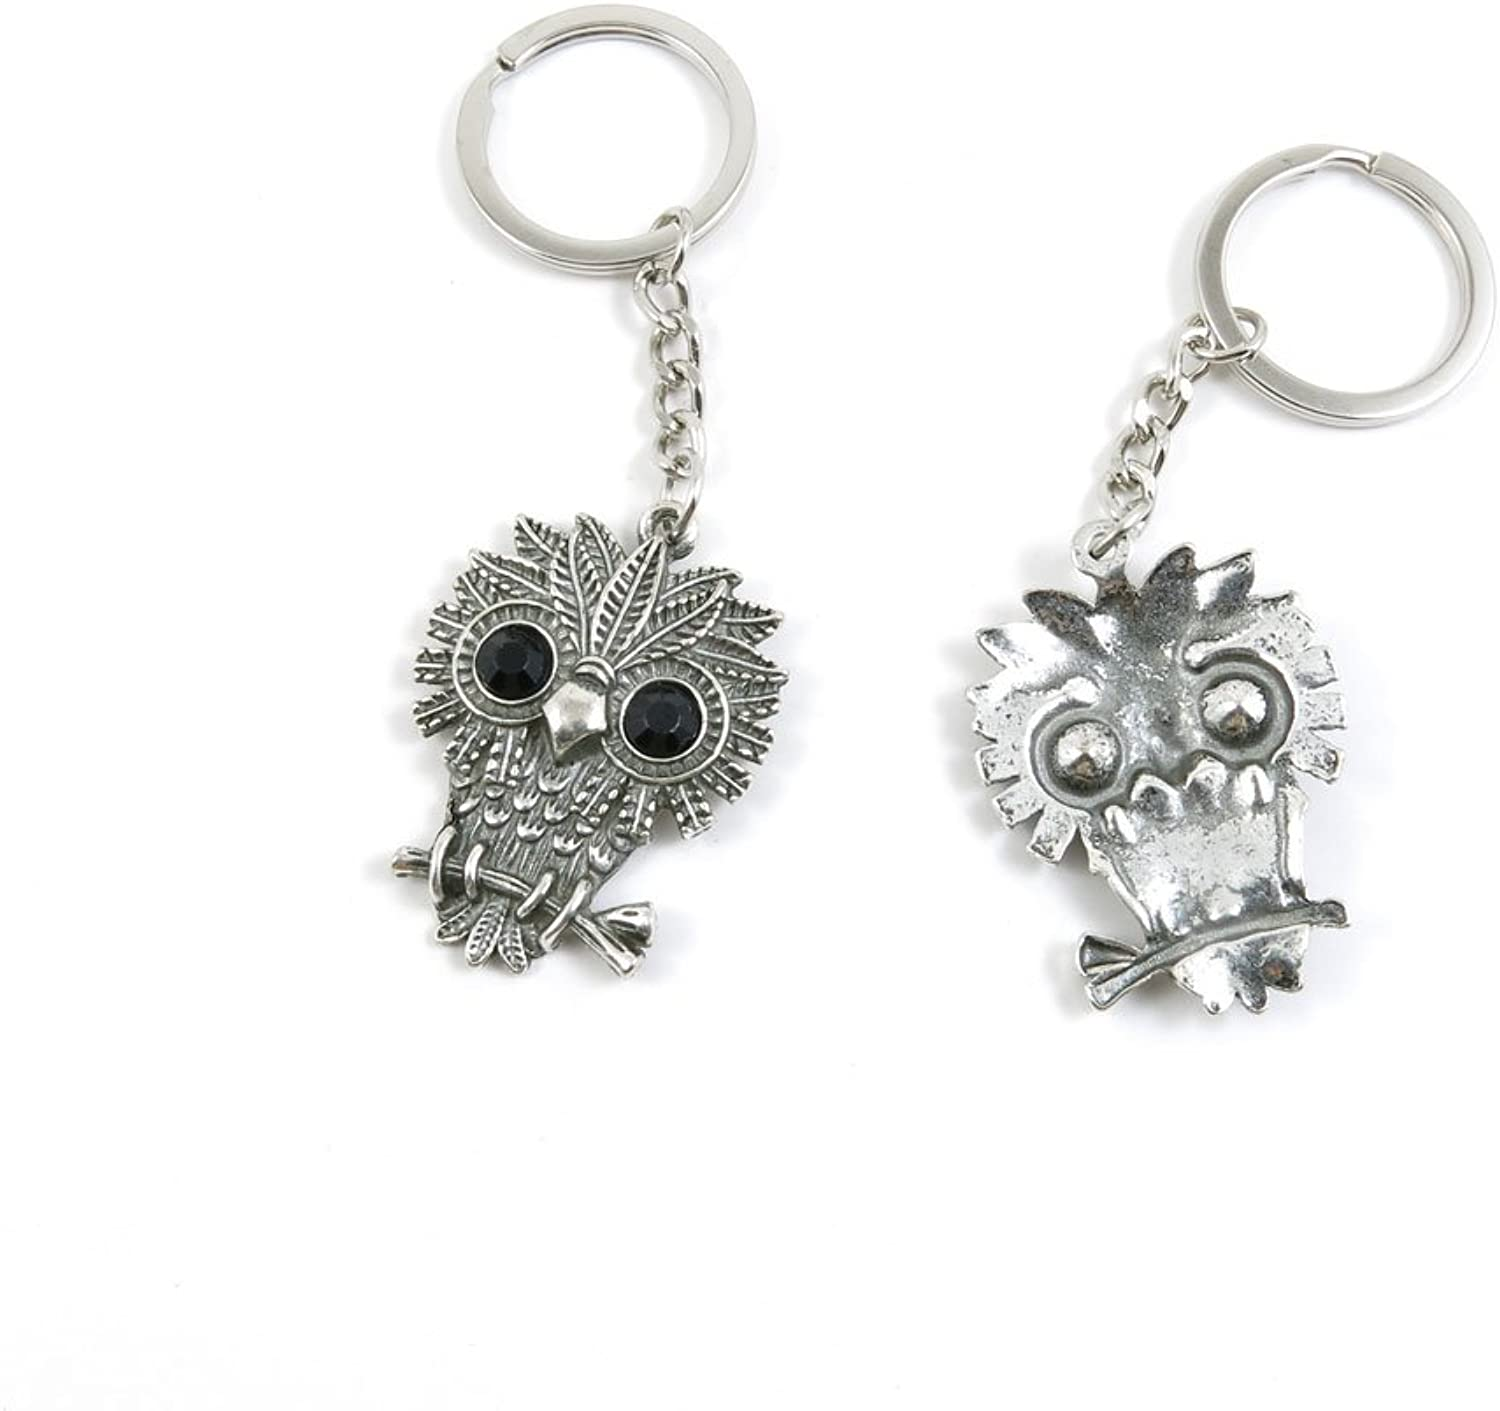 100 Pieces Keychain Keyring Door Car Key Chain Ring Tag Charms Bulk Supply Jewelry Making Clasp Findings L6QY9U Owl